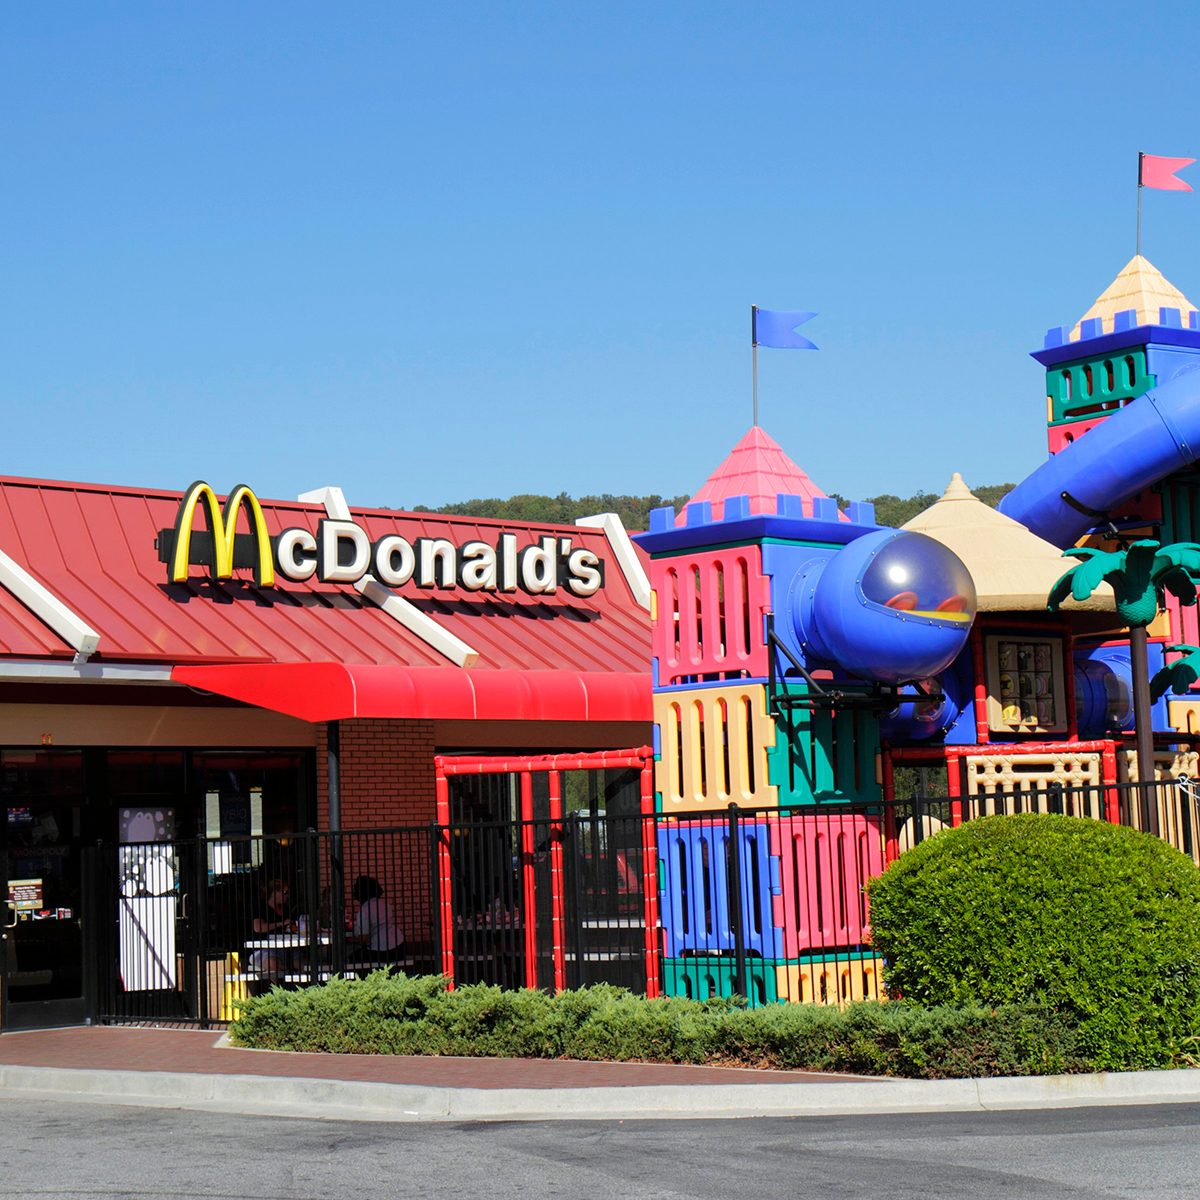 McDonald's with a play area